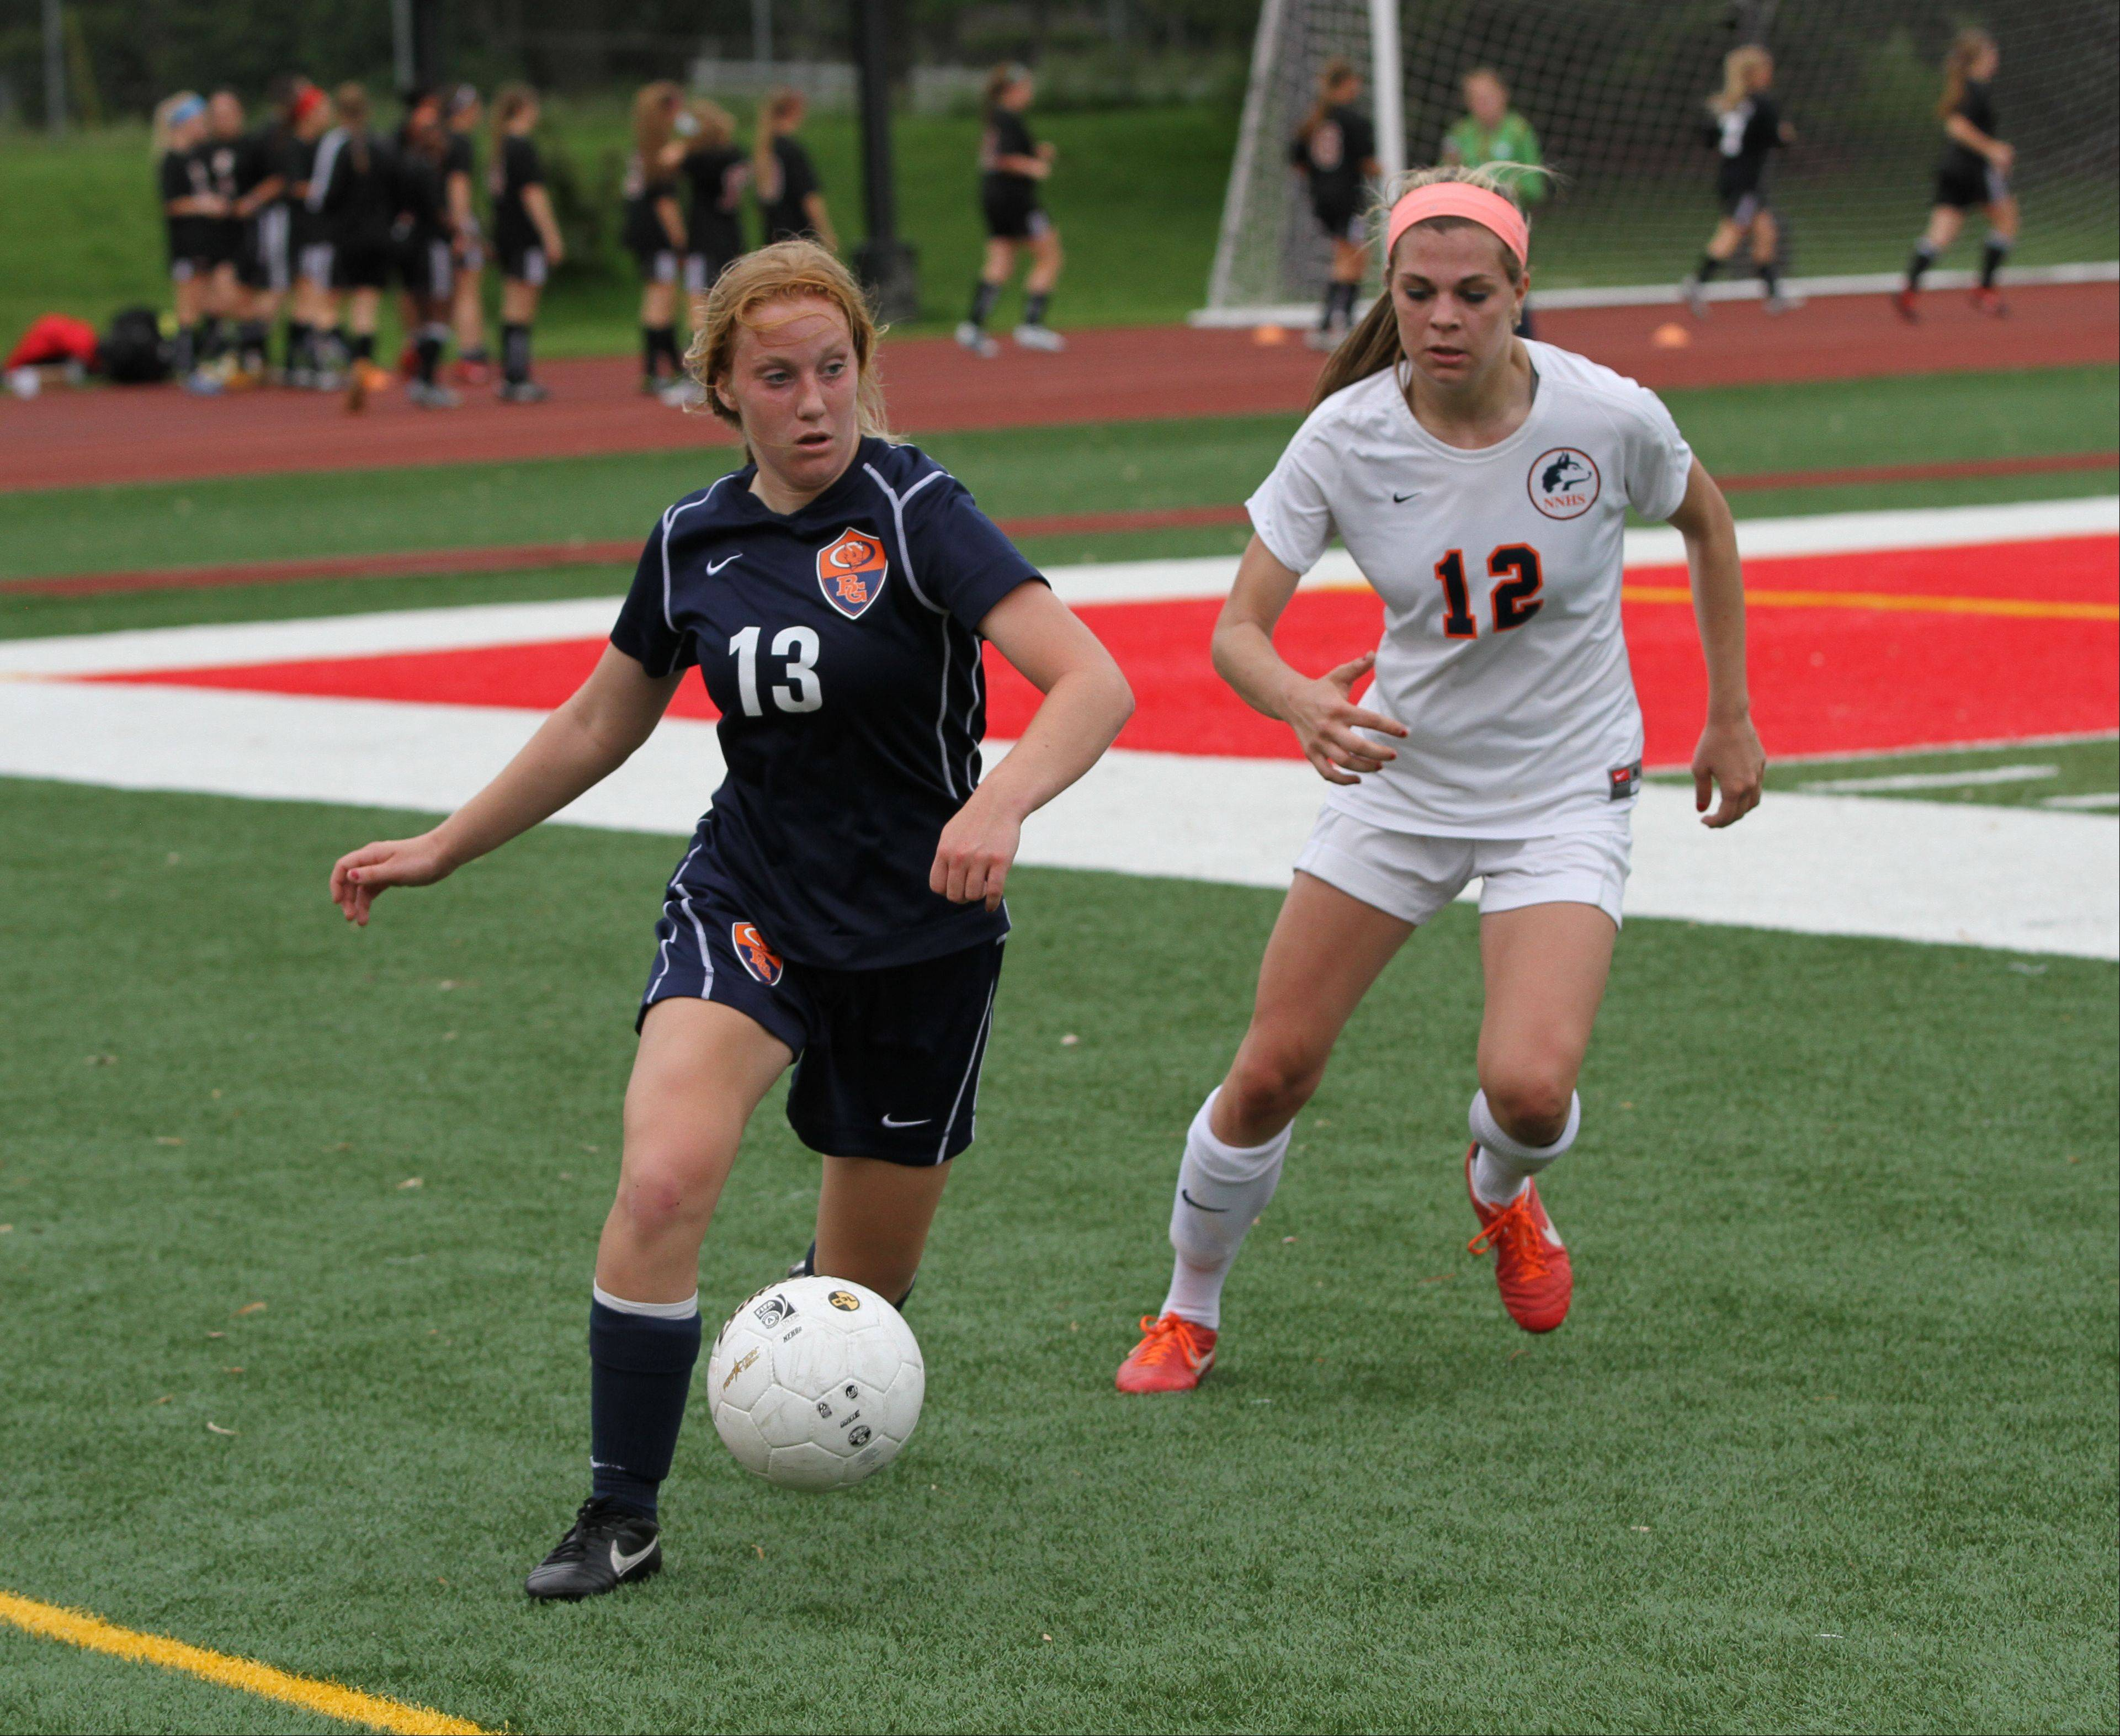 Buffalo Grove High School midfield Kelli Zickert plays the ball against Naperville North High School defenseman Abby Mangefrida at the girl soccer state semi-final game on Friday, May 31, 2013 at North Central College in Naperville, Ill.